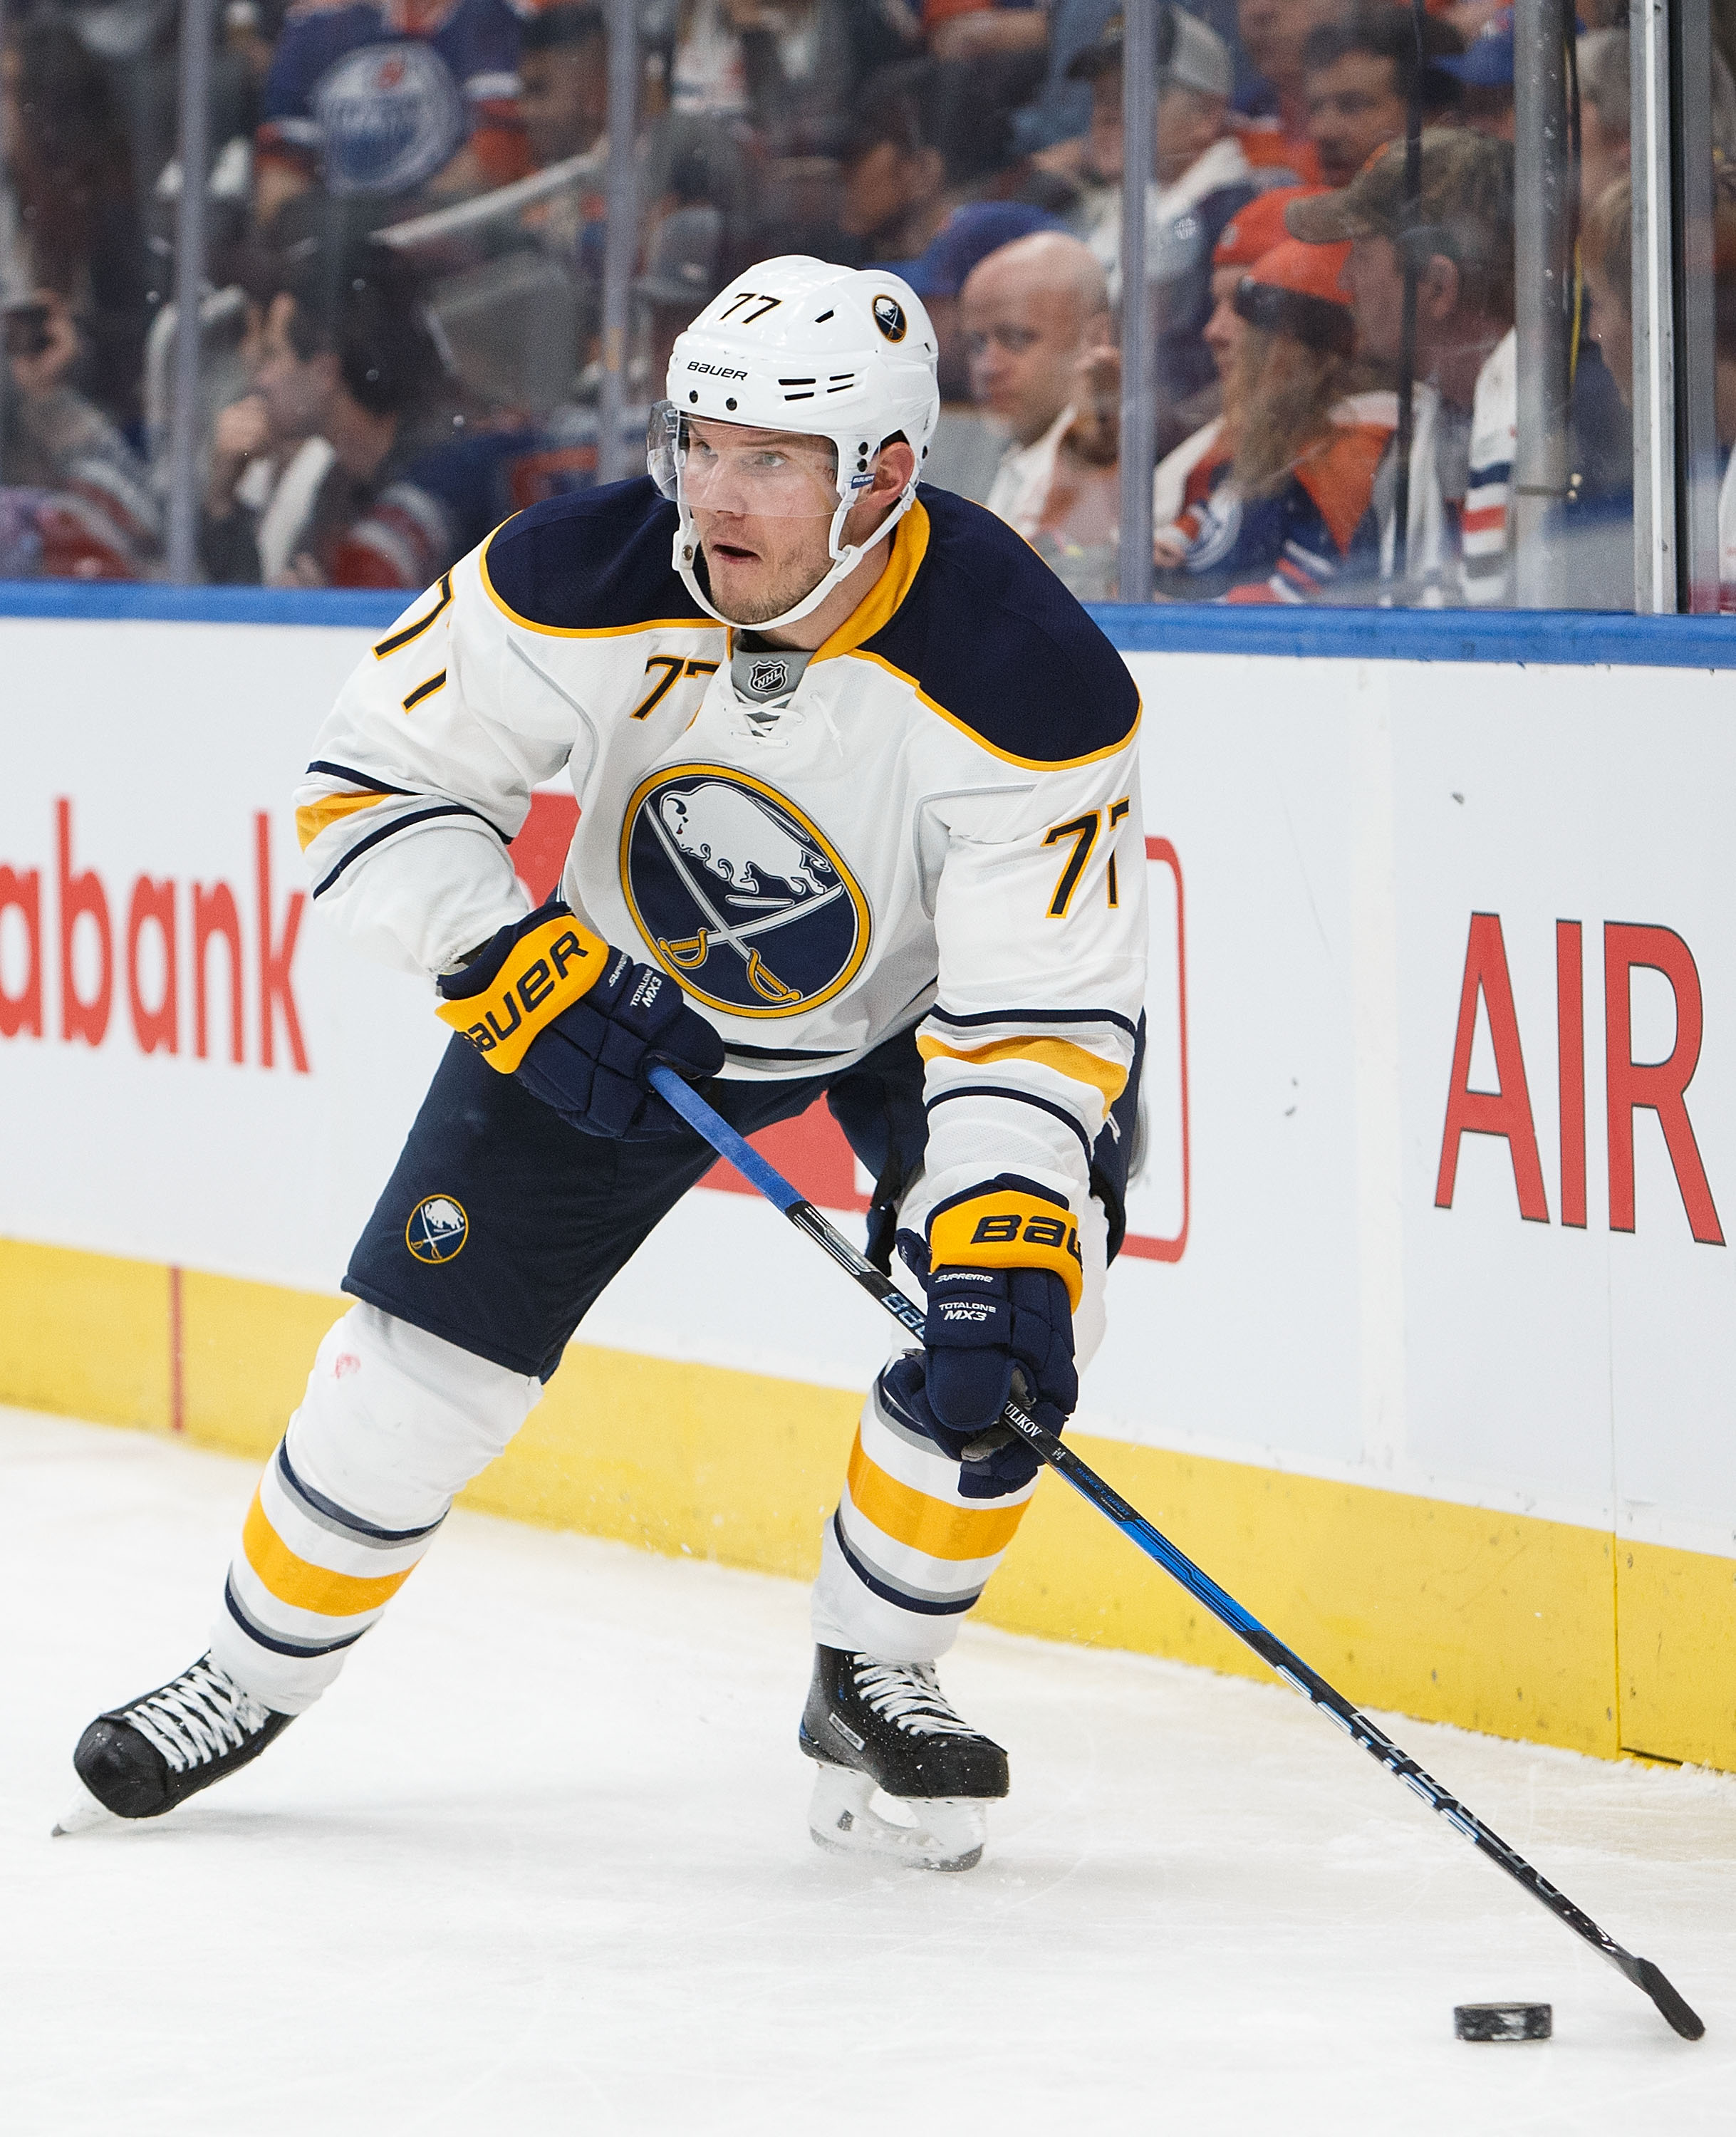 Dmitry Kulikov is feeling comfortable with Sabres and will get more ice time. (Photo by Codie McLachlan/Getty Images)